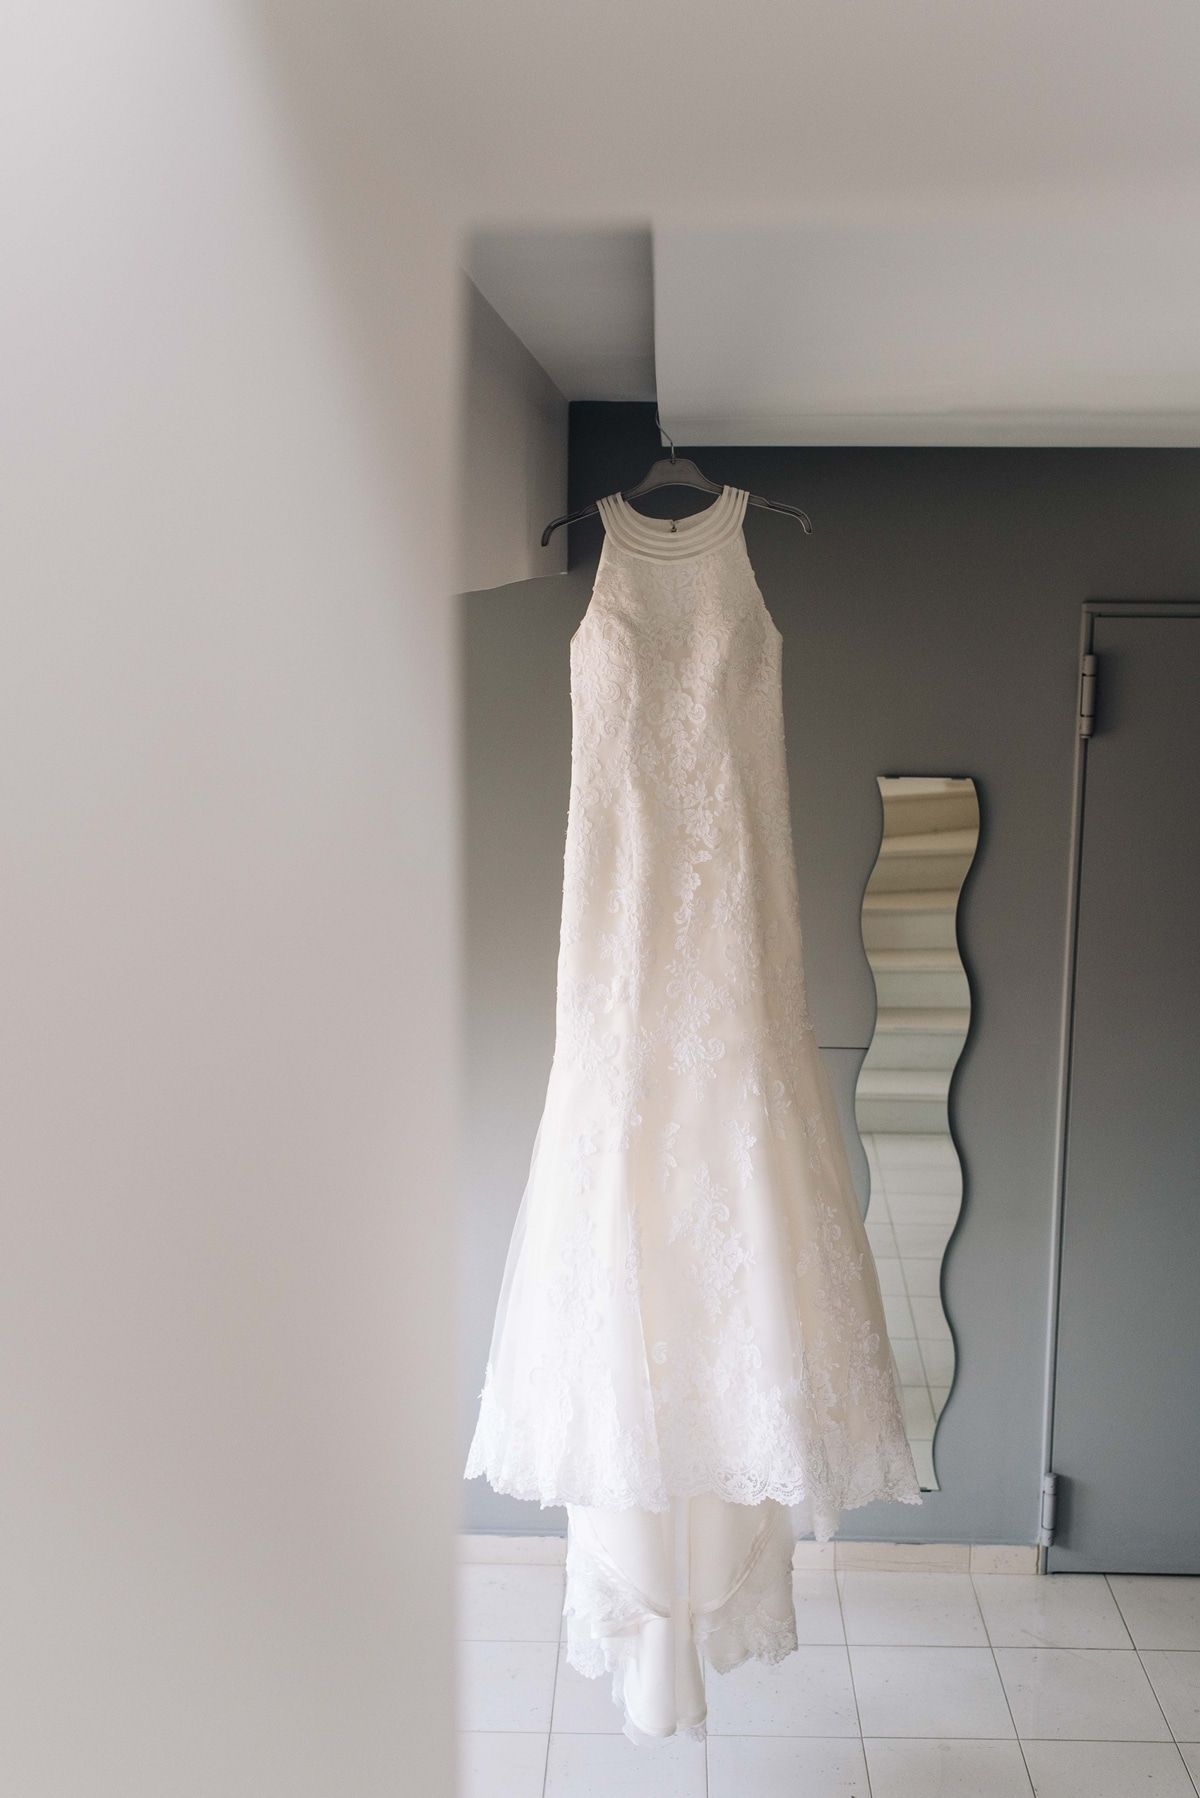 White sleeveless wedding dress